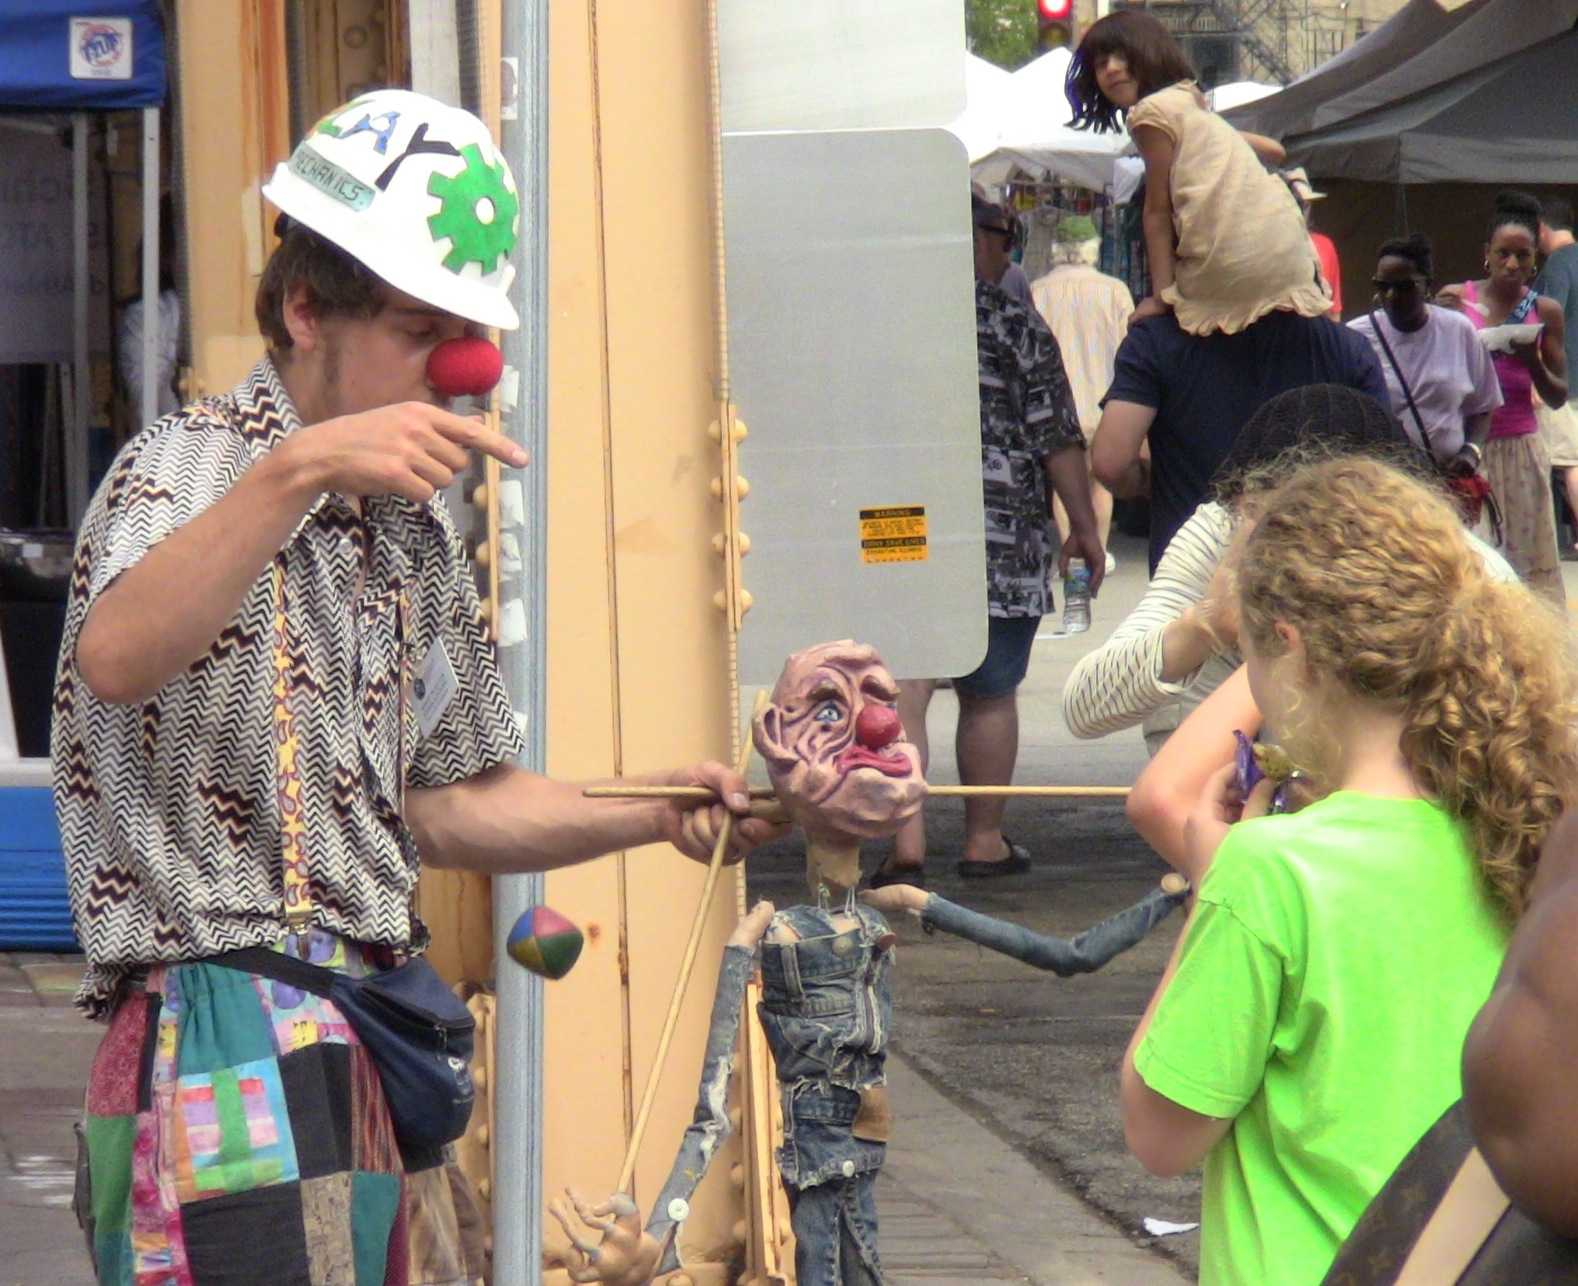 A street performer plays with a puppet Sunday at Custer's Last Stand, an annual arts festival near Main Street. The weekend fair got off to a slow start due to rain and strong winds Saturday.